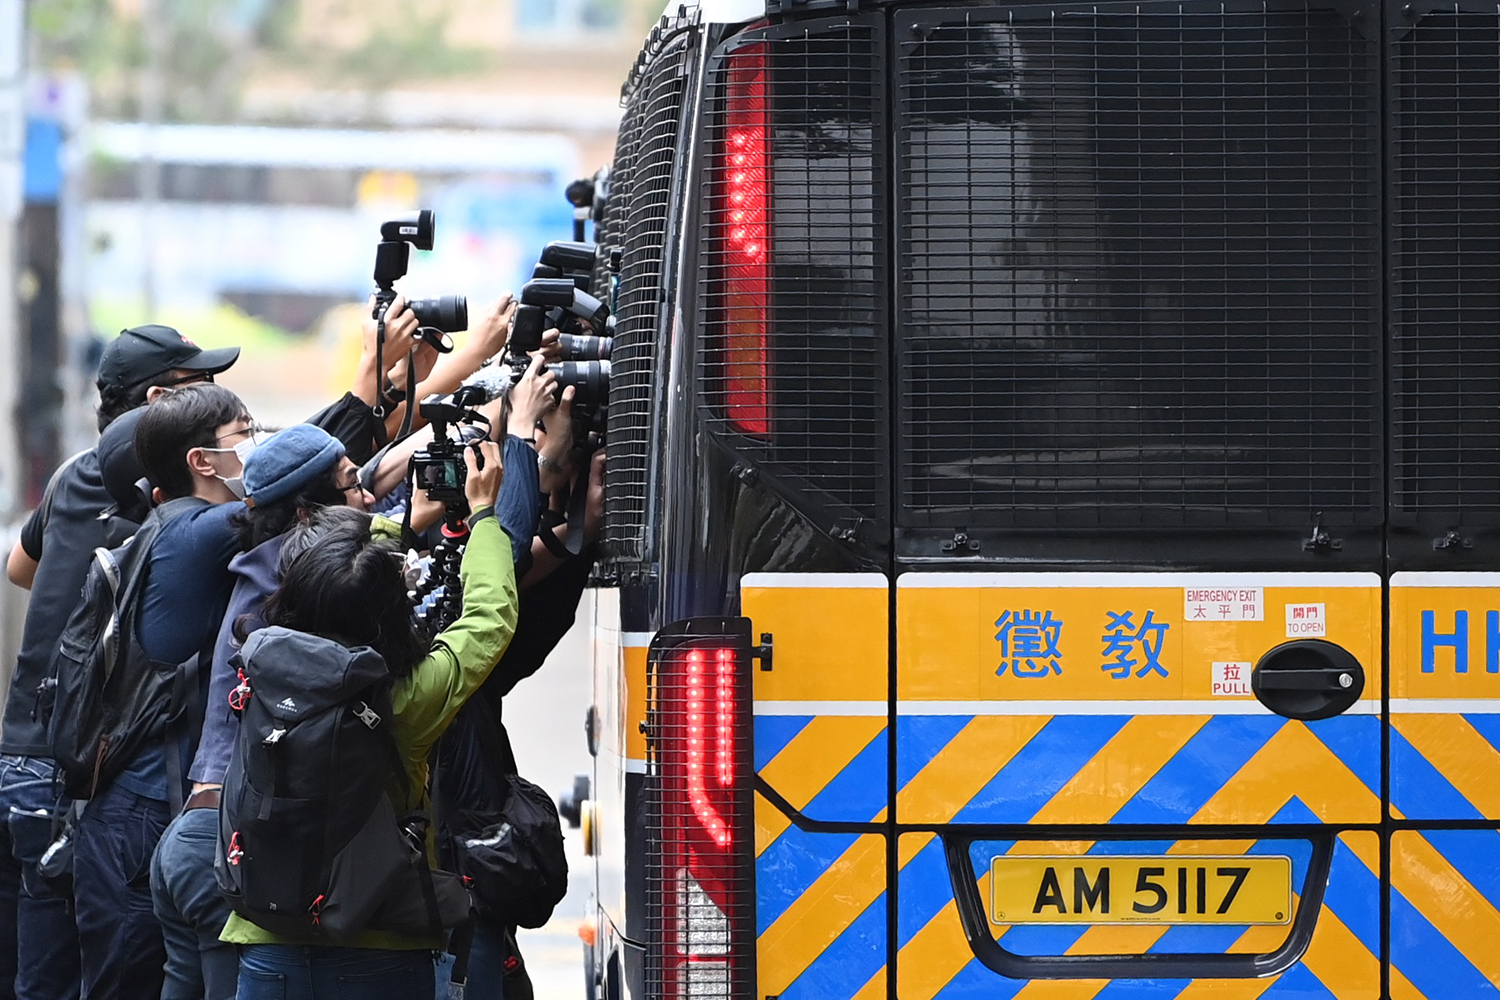 Members of the media surround a correctional services bus purportedly carrying pro-democracy activists Agnes Chow, Ivan Lam, and Joshua Wong as it leaves the court in Hong Kong on Nov. 23. The three pleaded guilty to inciting a rally during pro-democracy protests in 2019, deepening the crackdown against Beijing's critics. PETER PARKS/AFP via Getty Images